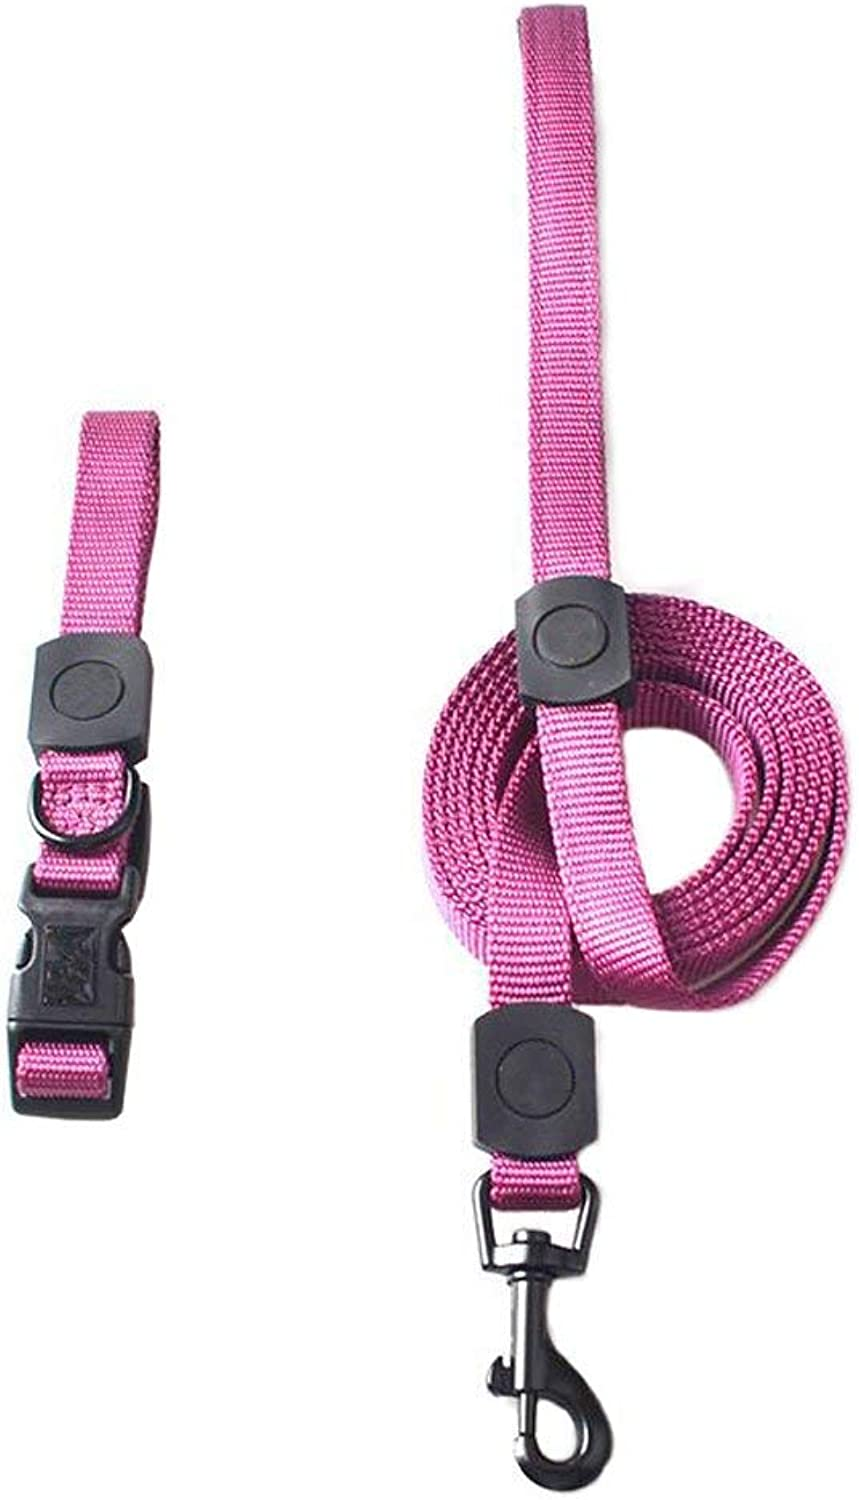 Dog Chain, Dog Leash Pet Chain Nylon Weave Outdoor Running Training Fashion Soft Comfortable Durable Multi color Optional (bluee Brown Green orange Pink Purple) (color   bluee, Size   S)